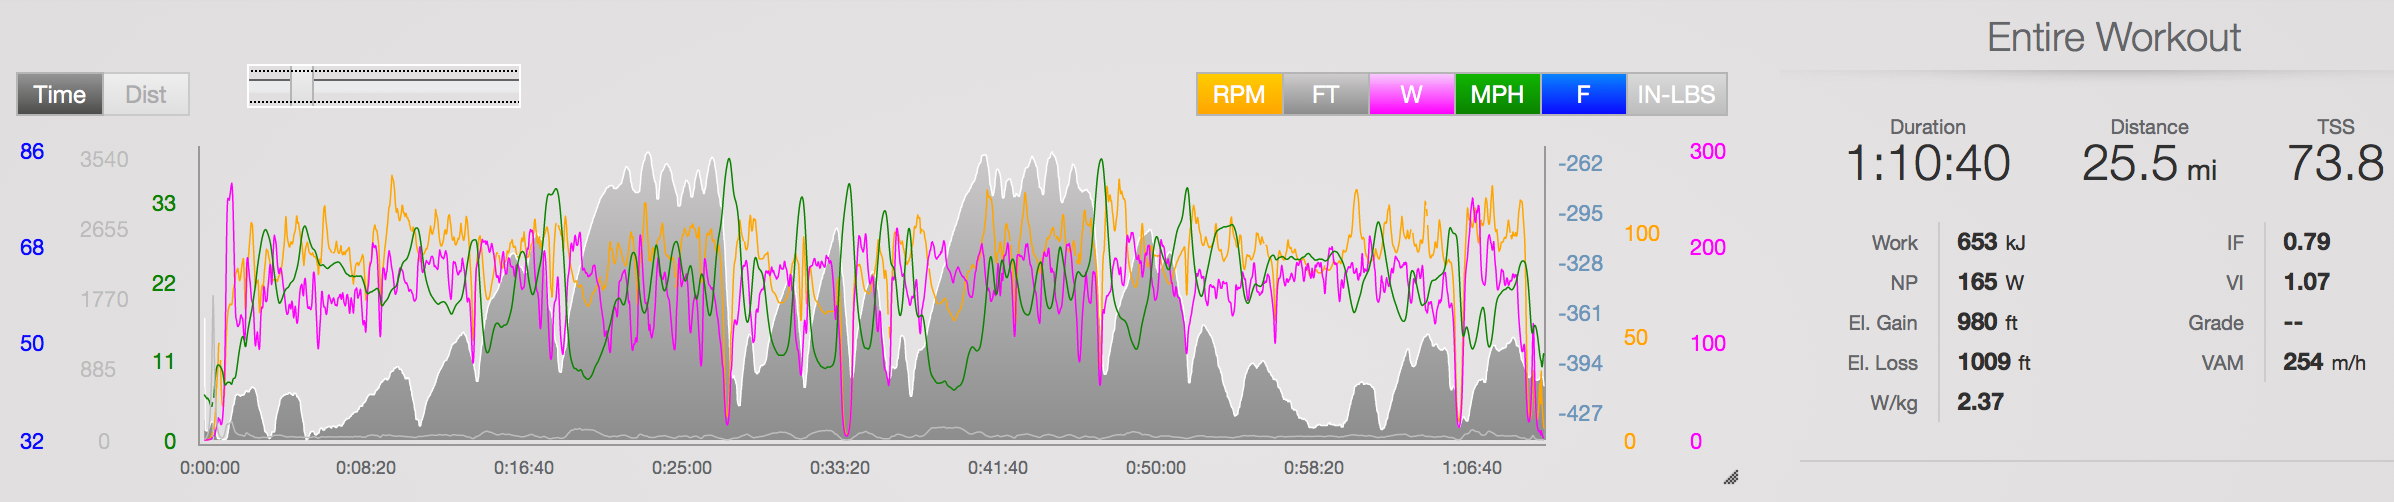 """2013 NYC Tri Bike File ( Link )   Both IF and W/kg are accurate. FTP was ~205w. The faster race with way lower power in comparison to 2014 can probably be attributed to the easier descending in good weather and no minor spill... 2.37 W/kg for an hour? Come on dude. These were my """"I ride like at 12-year-old girl"""" days of triathlon. Hopefully I look back on my 2016 file and think the same in a few years."""